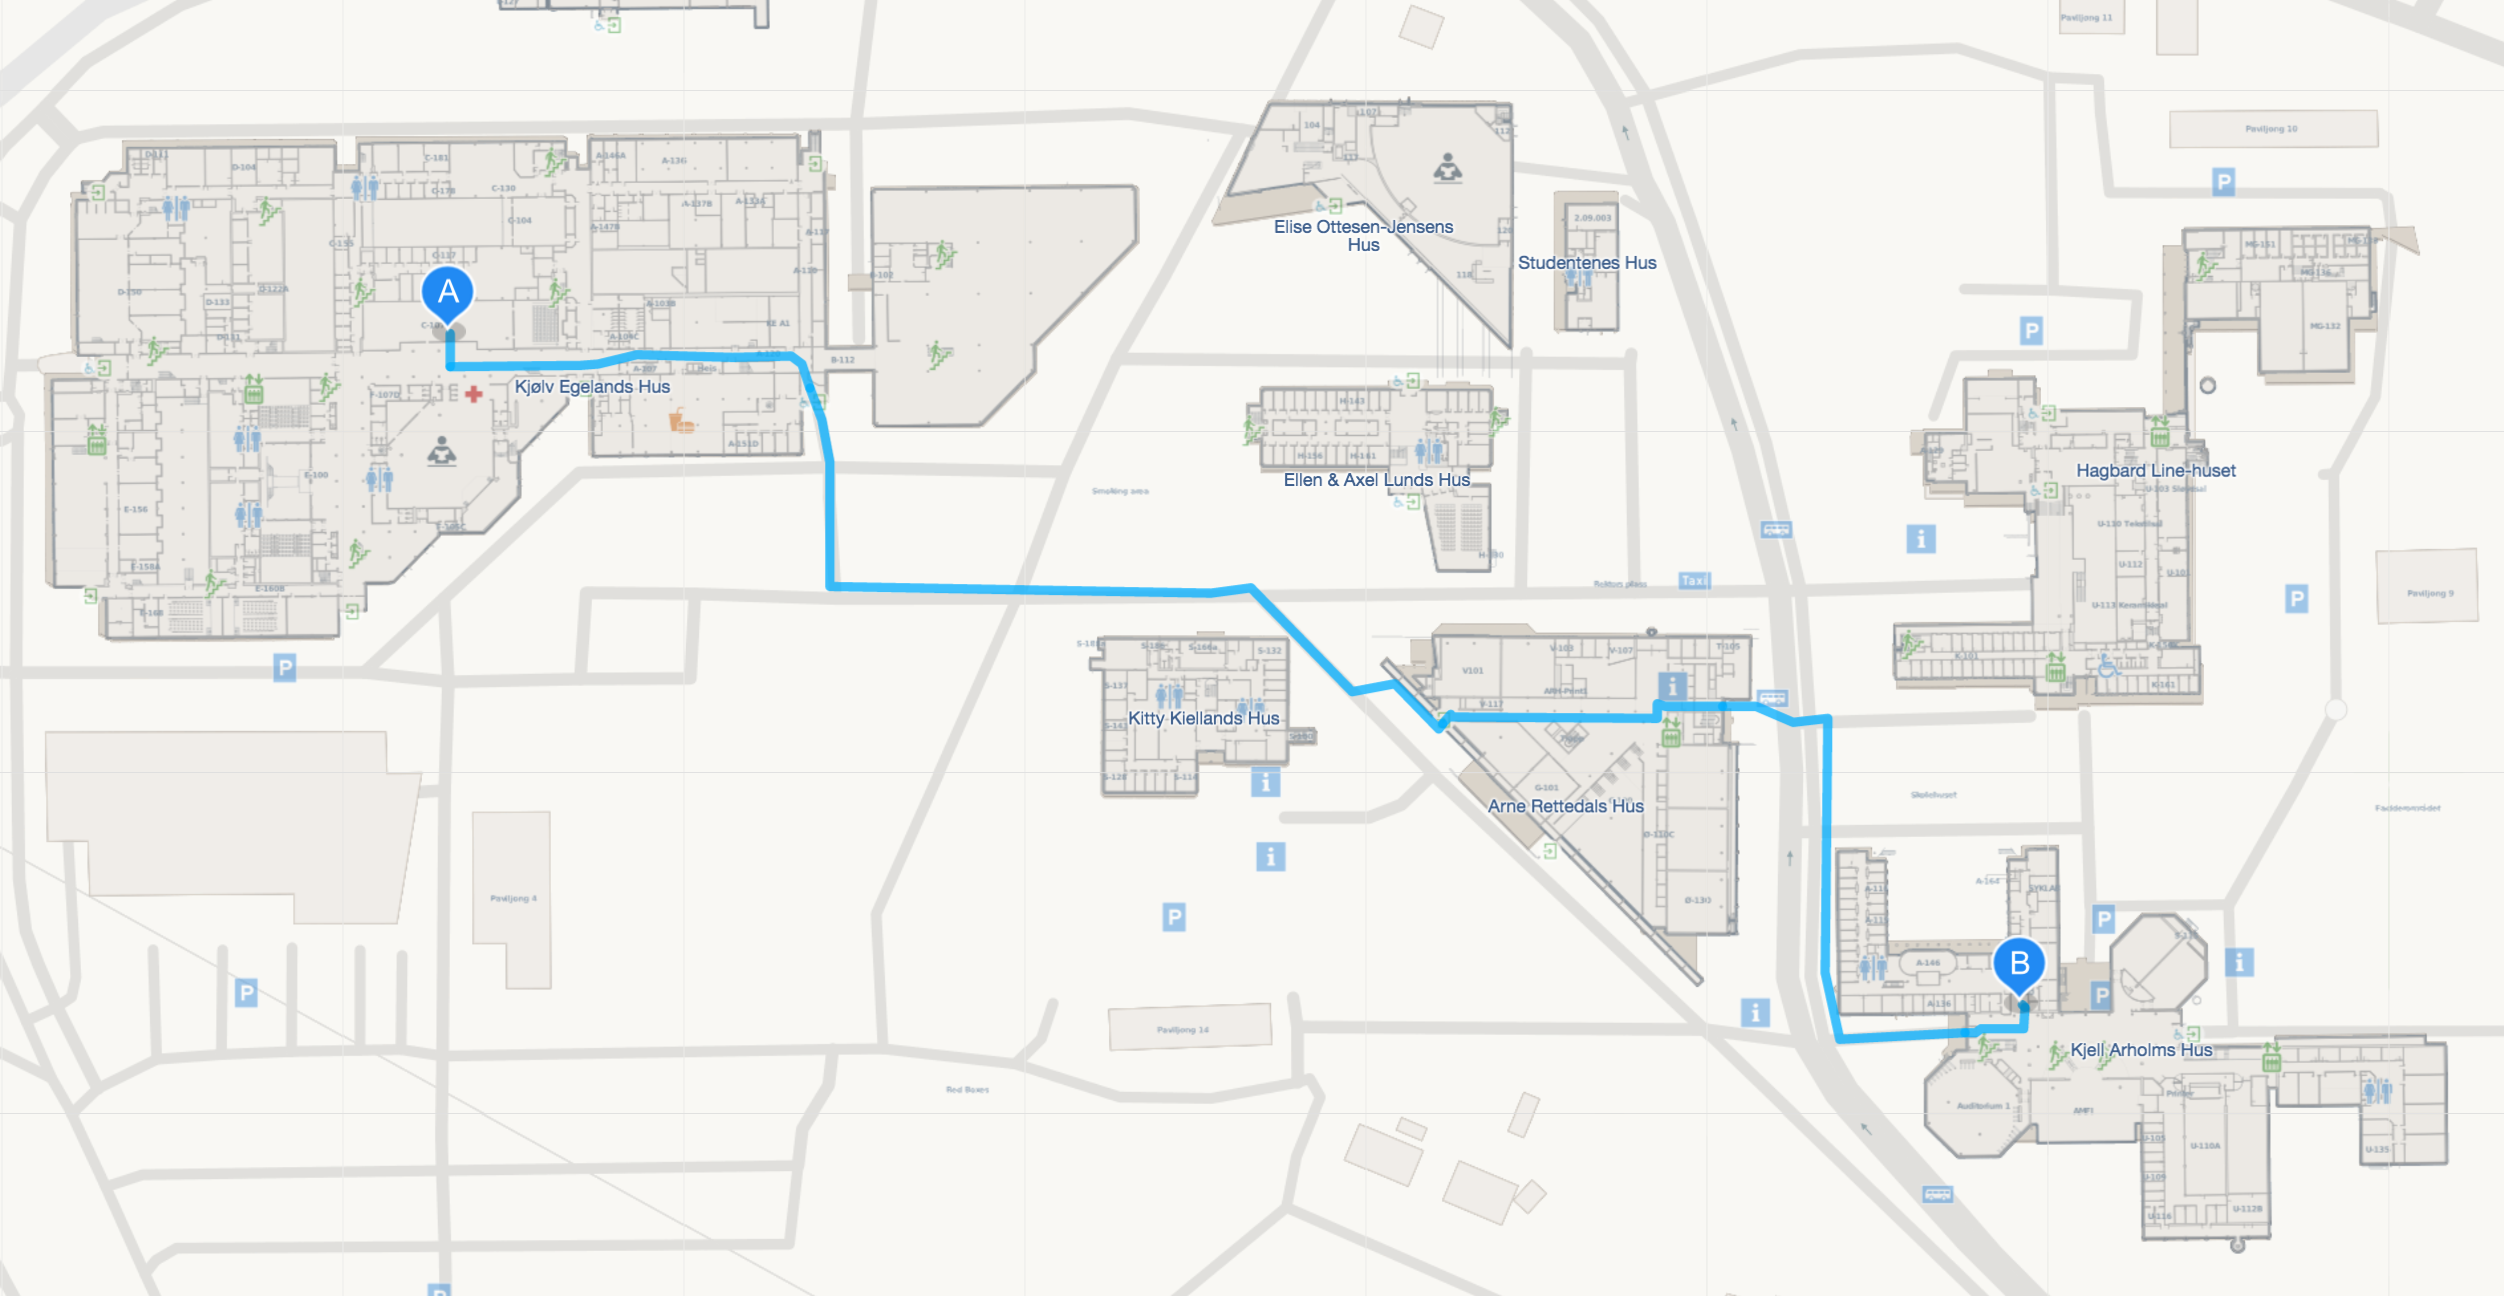 Map showing how to navigate from inside one building to a room across campus